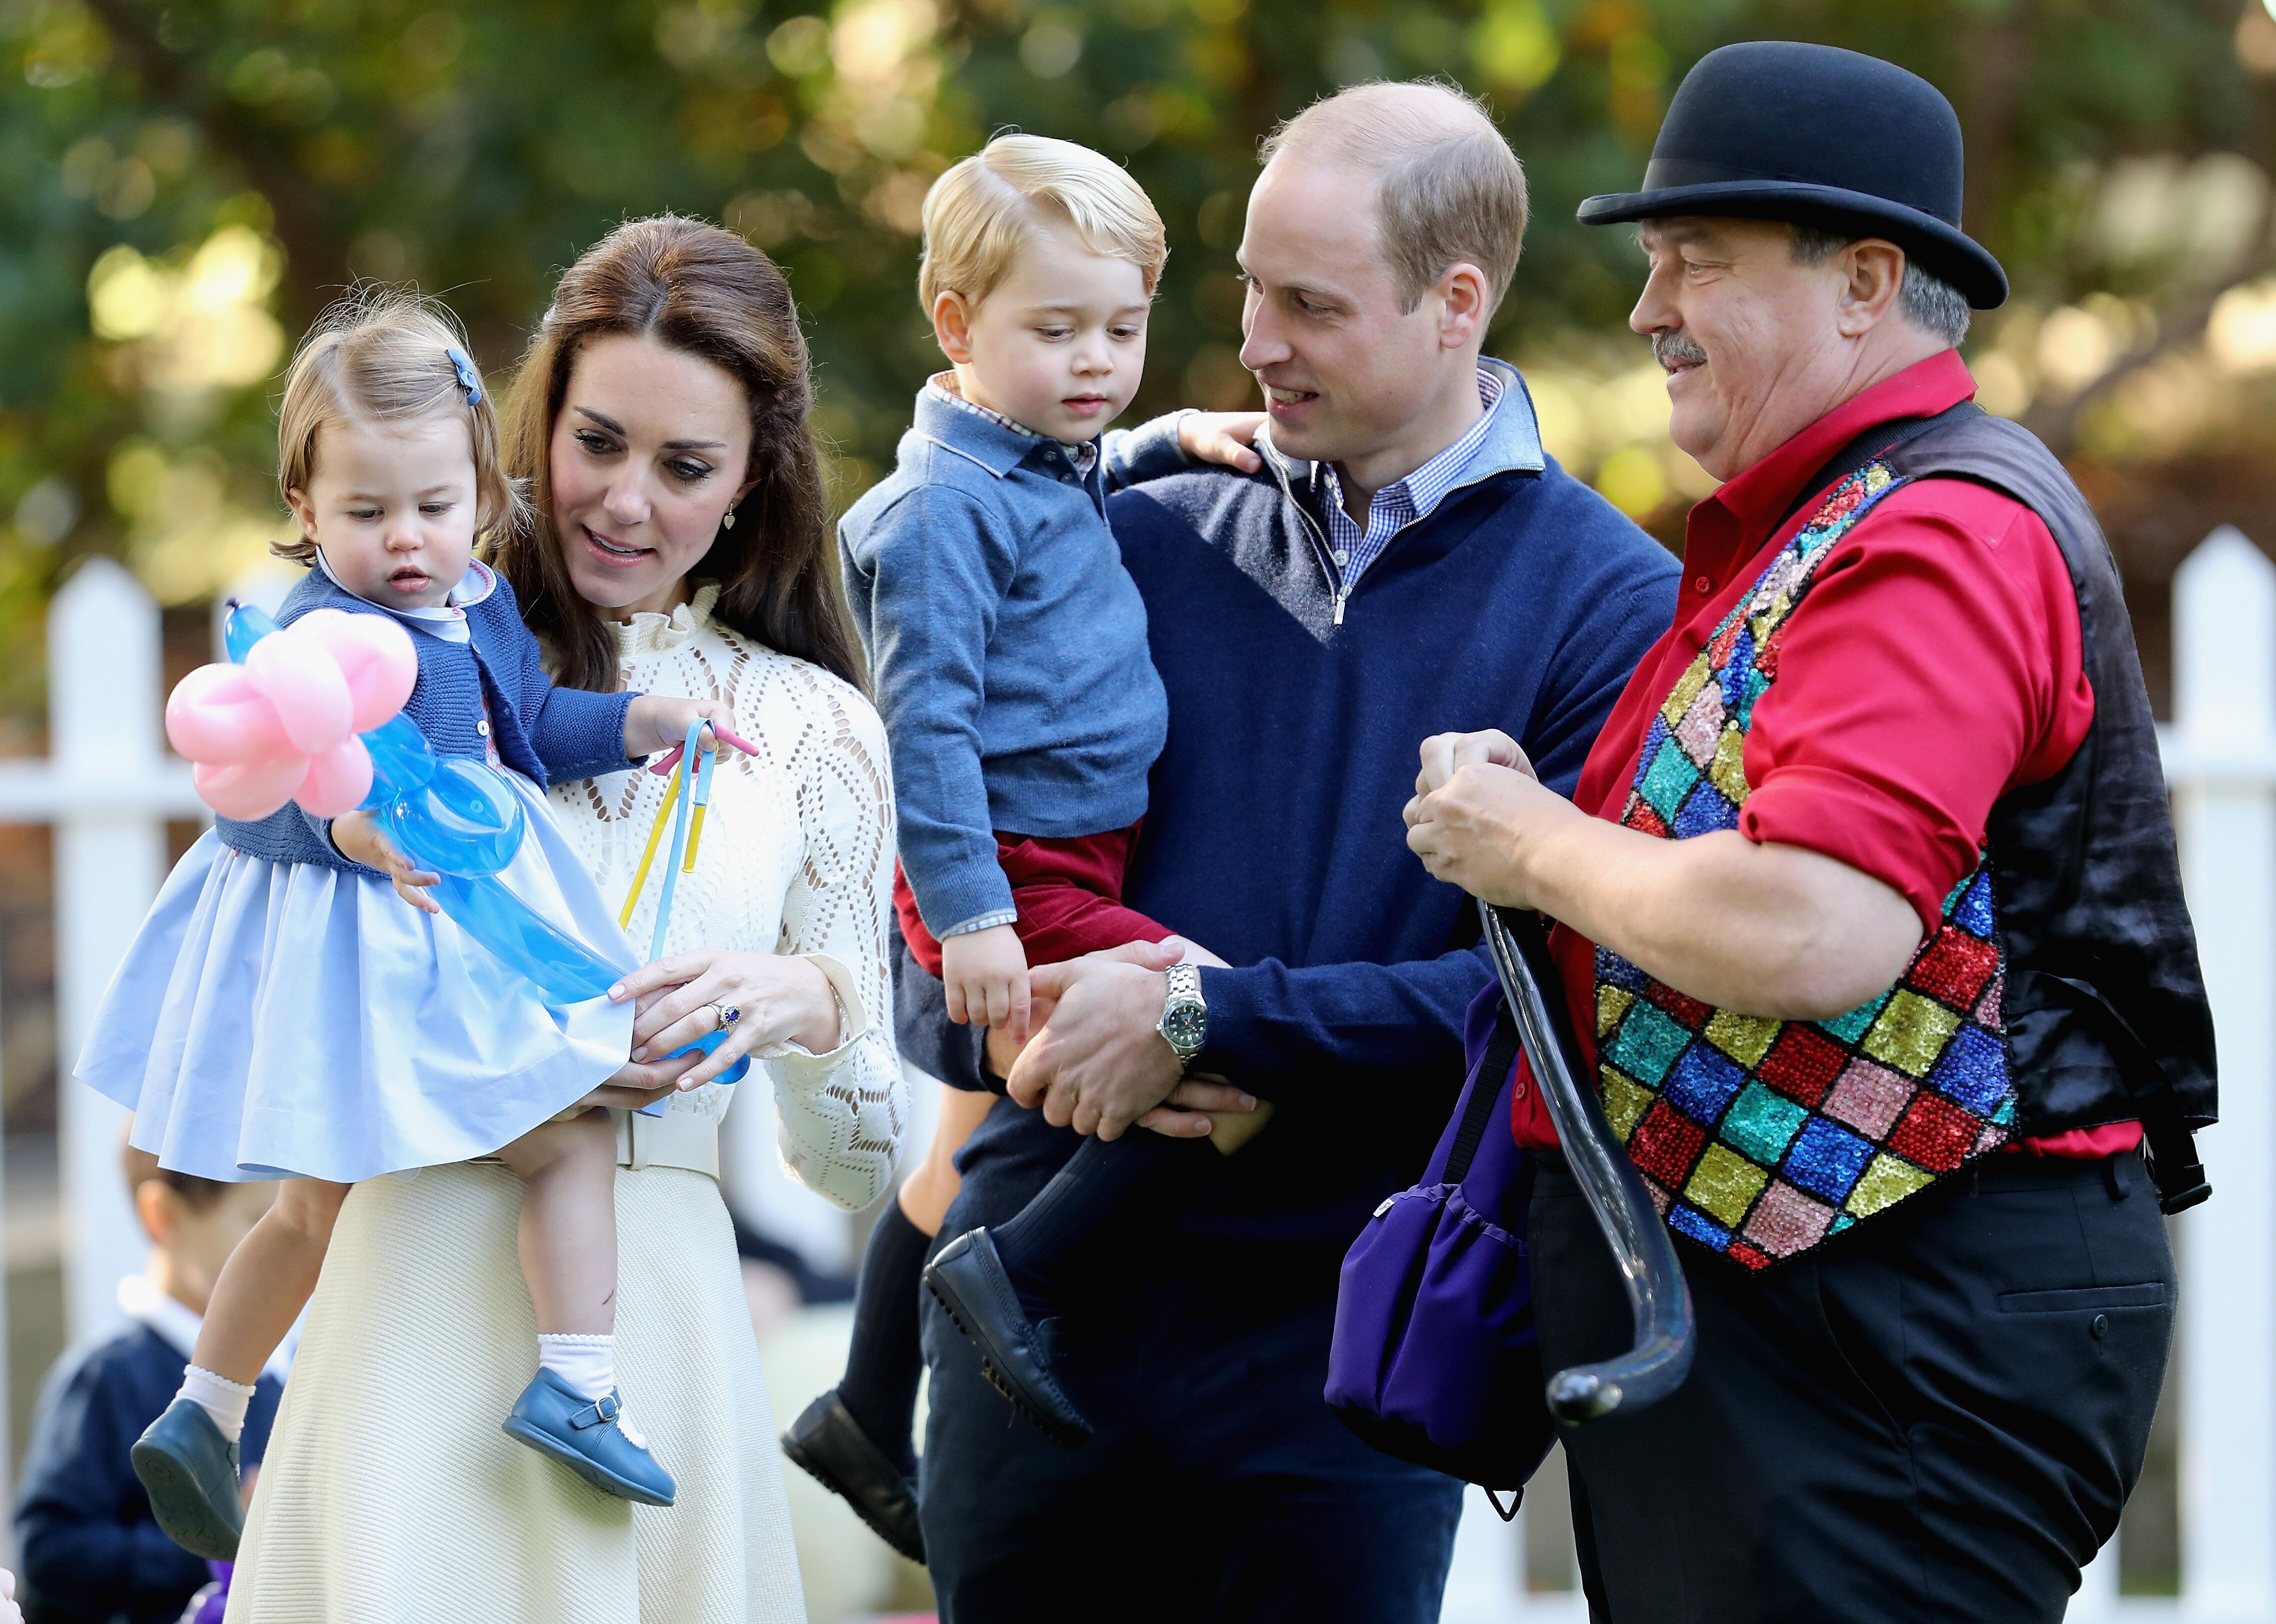 Duchess of Cambridge holding Princess Charlotte of Cambridge and Prince George of Cambridge, being held by Prince William, Duke of Cambridge at a children's party for Military families during the Royal Tour of Canada on September 29, 2016 in Victoria, Canada | Photo: Getty Images